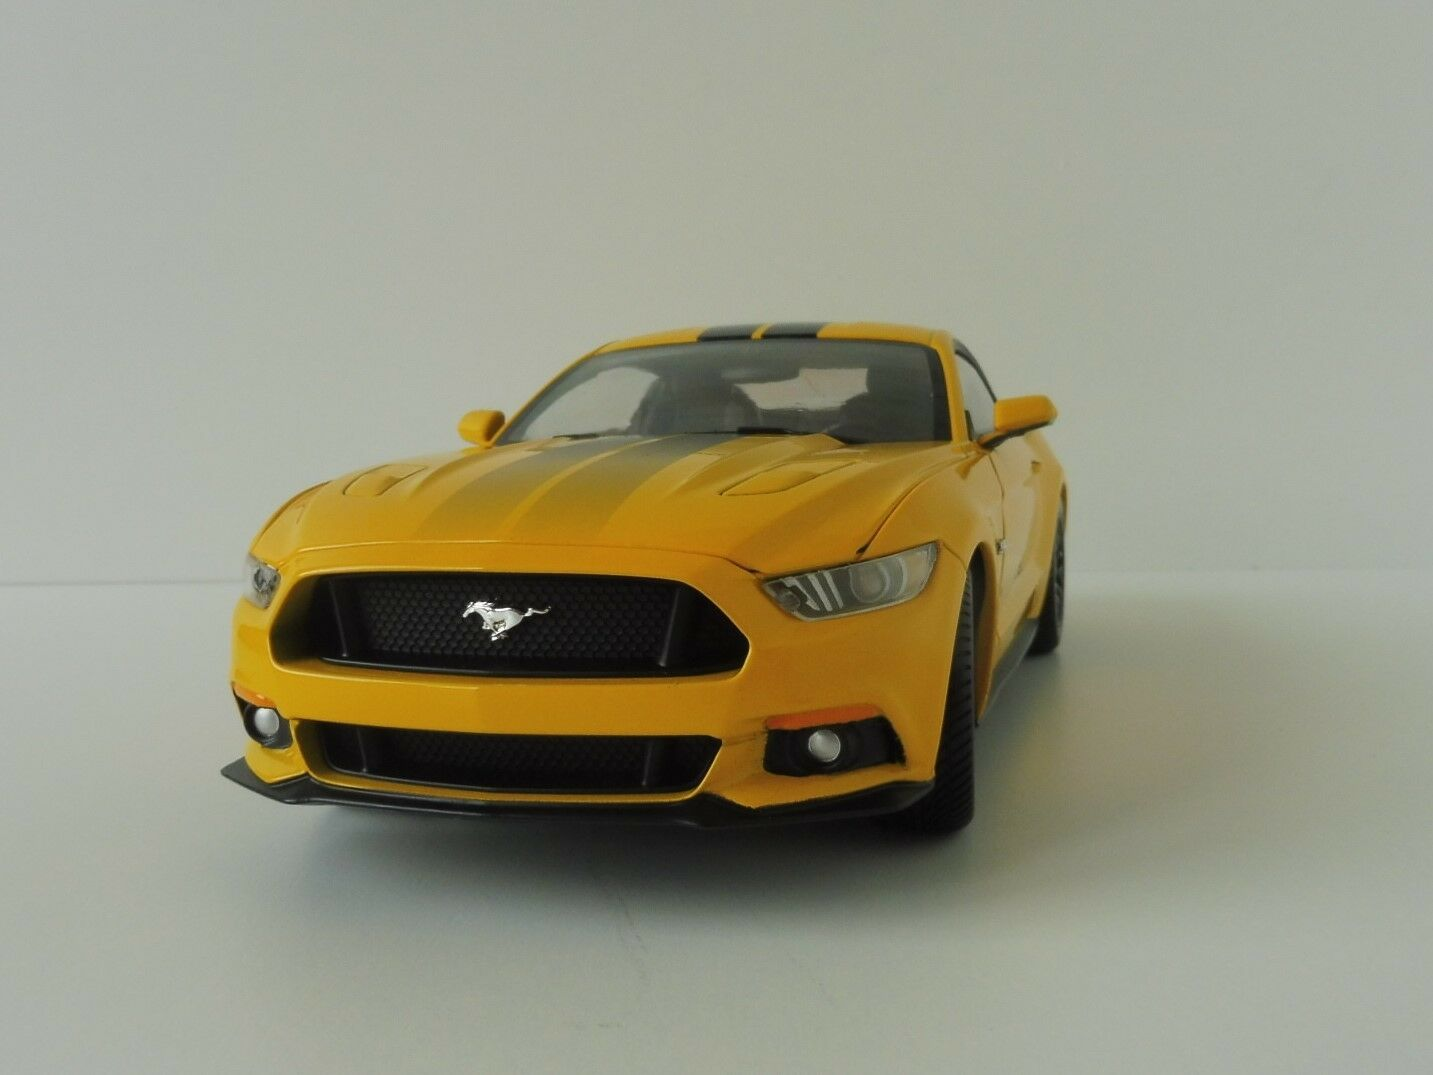 Ford Mustang GT 2016 triple giallo 1 18 aw229 06 auto World aw229